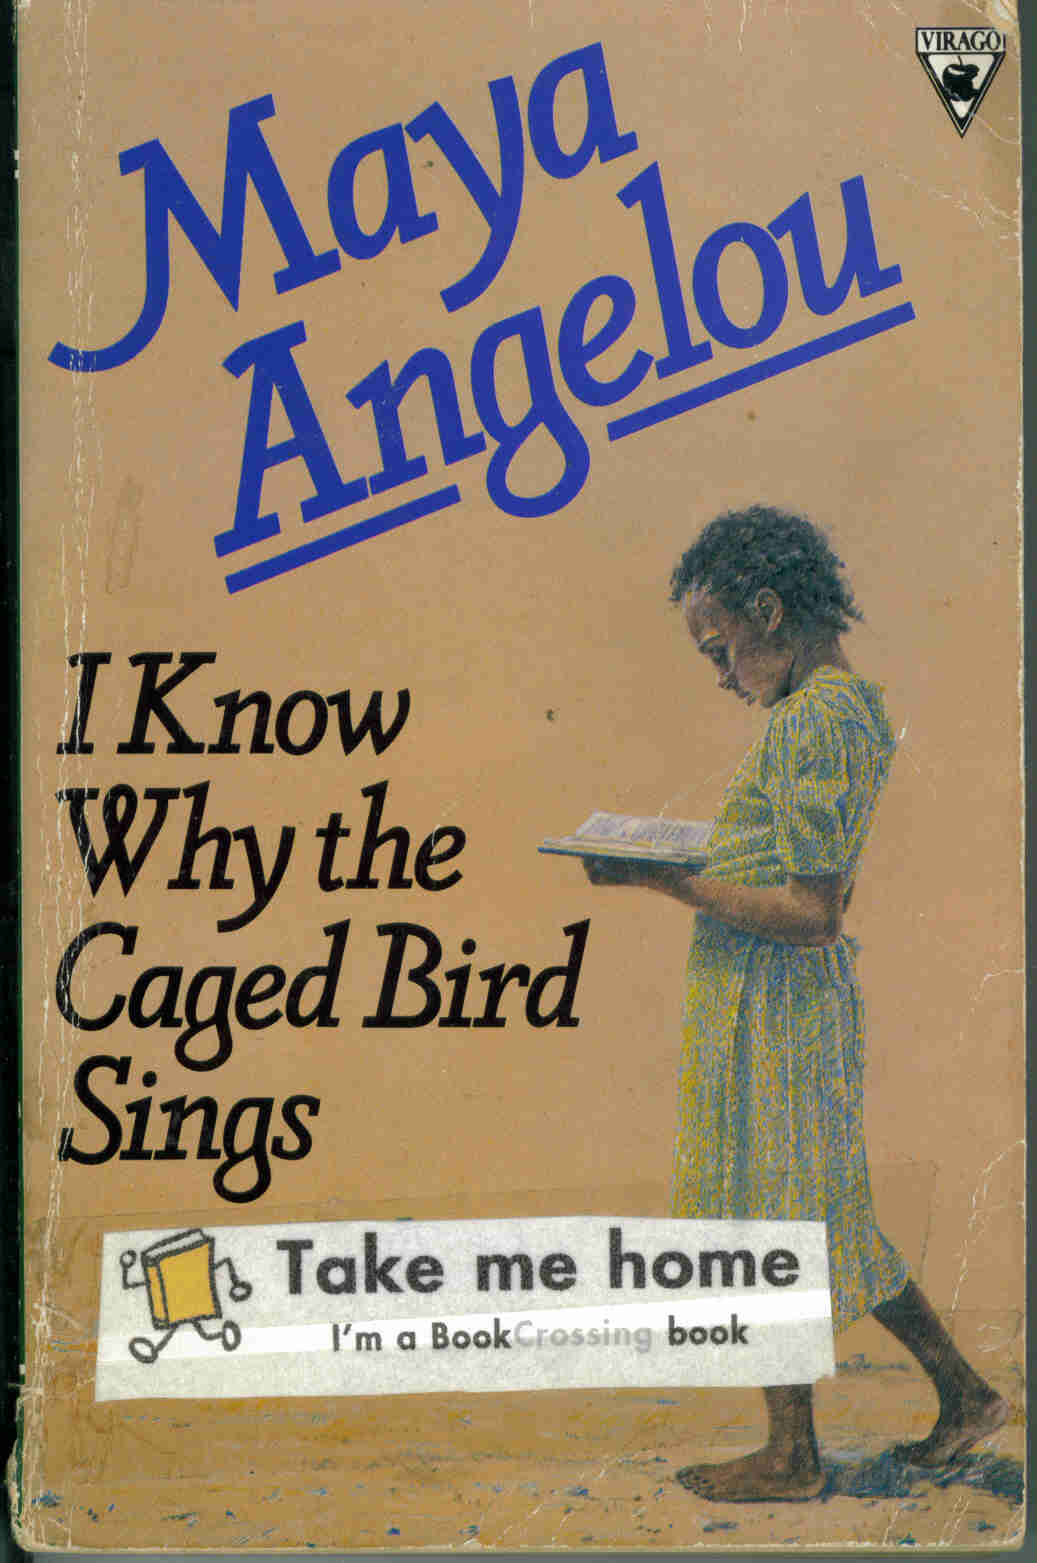 i know why the caged bird sings 2 essay I know why the caged bird sings - racism essay example reading is an ongoing theme through maya's childhood and books even become her lifeline after mr - i know why the caged bird sings introduction.